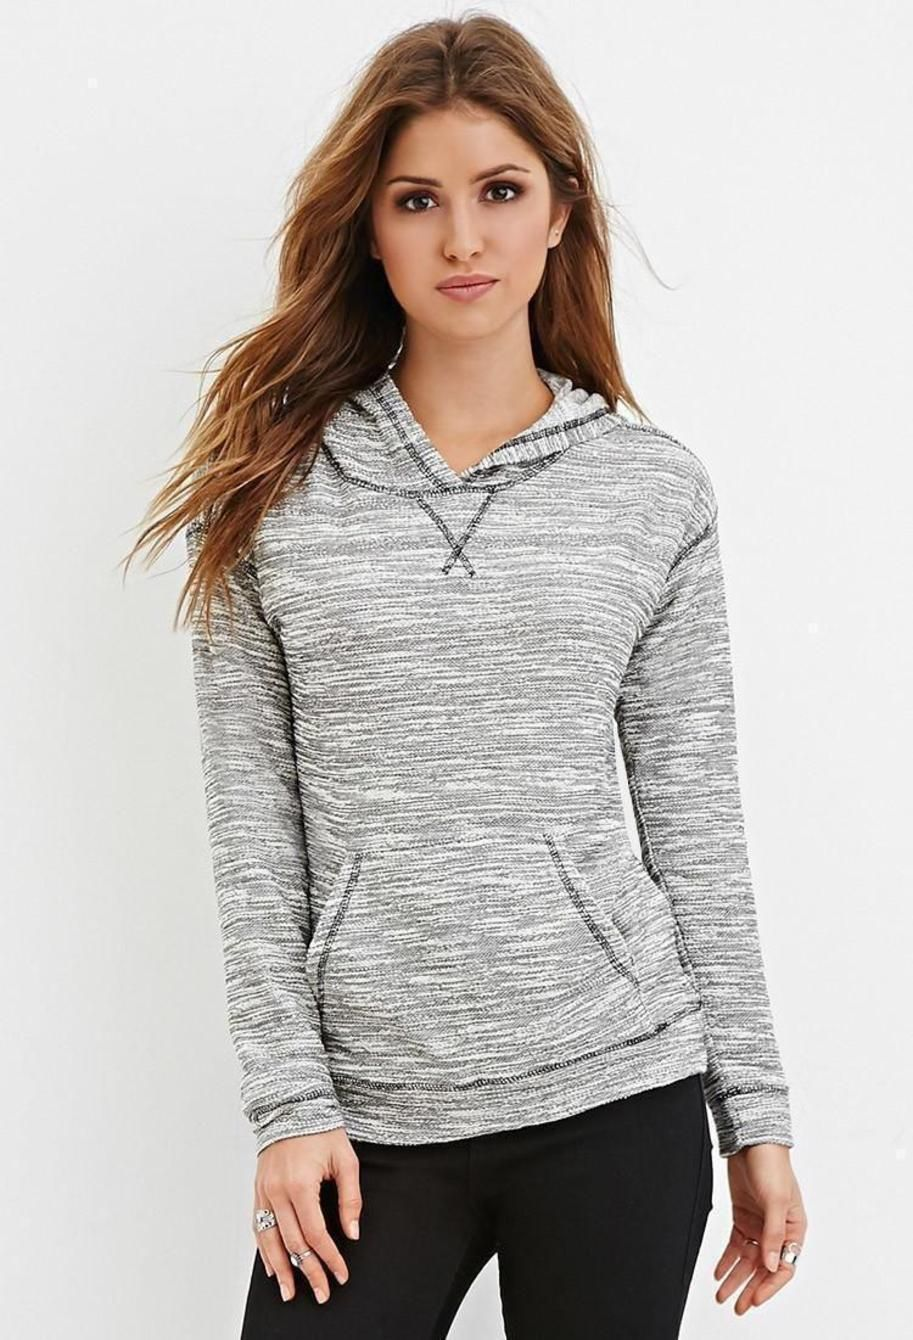 Heathered Knit Hoodie. ► get more @rohitanshu ◄